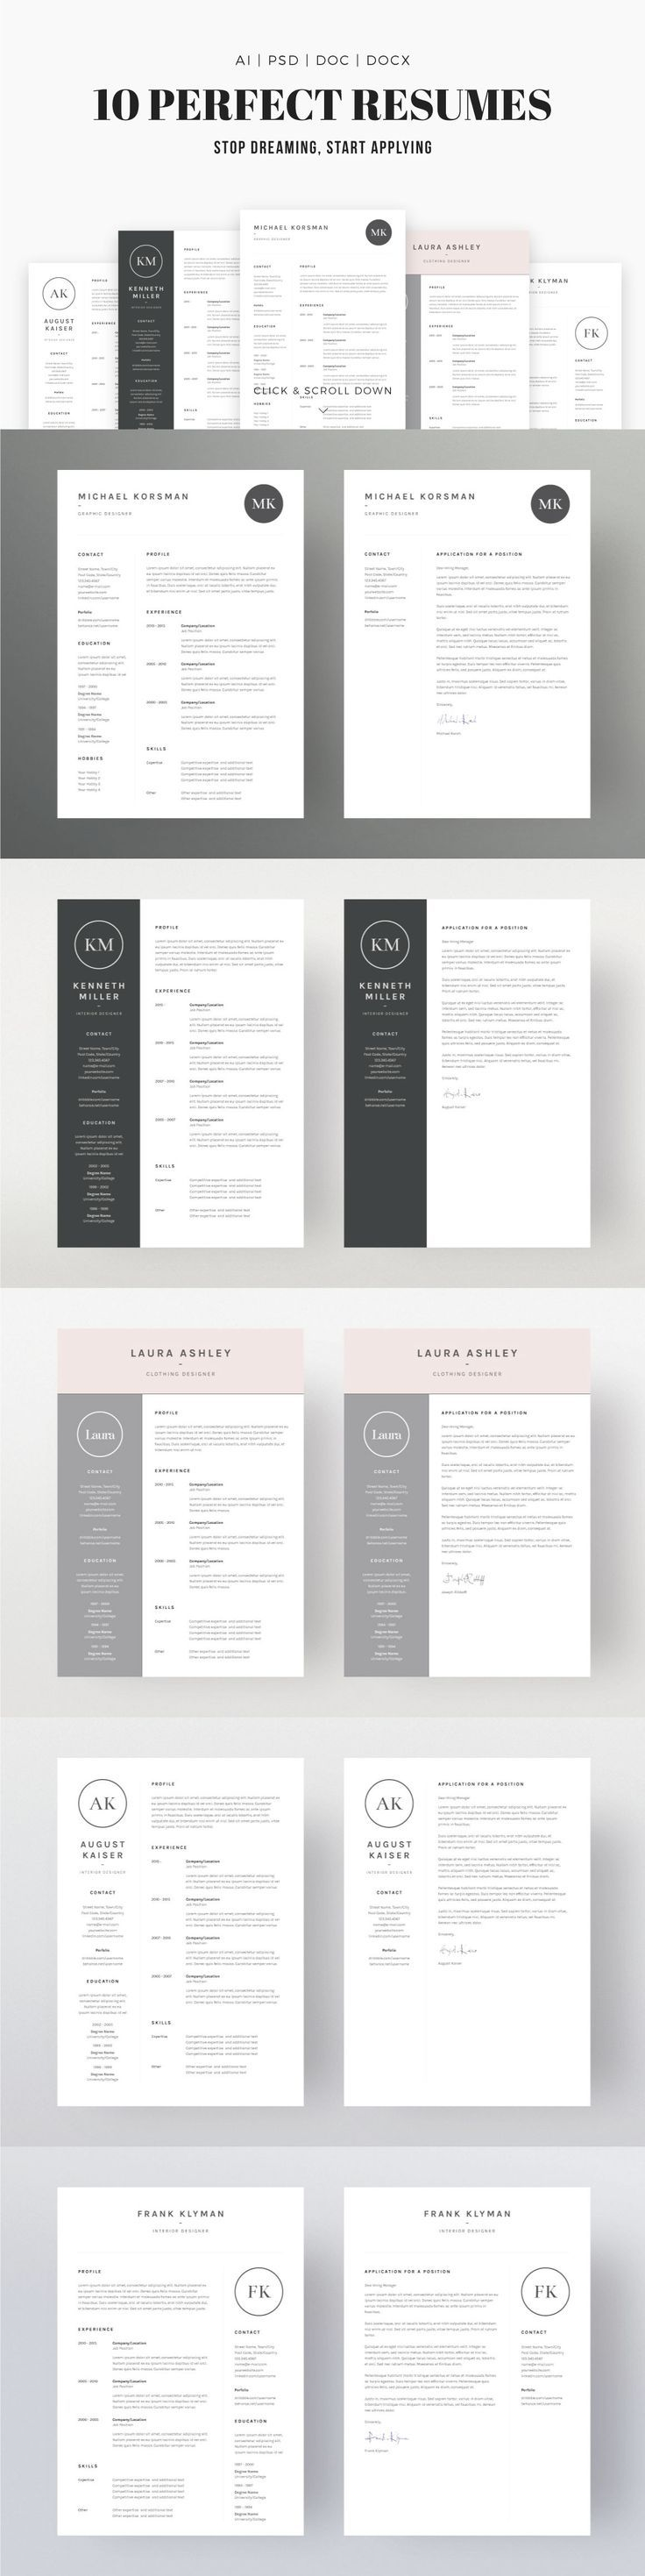 best ideas about professional resume template job seeker s dream bundle